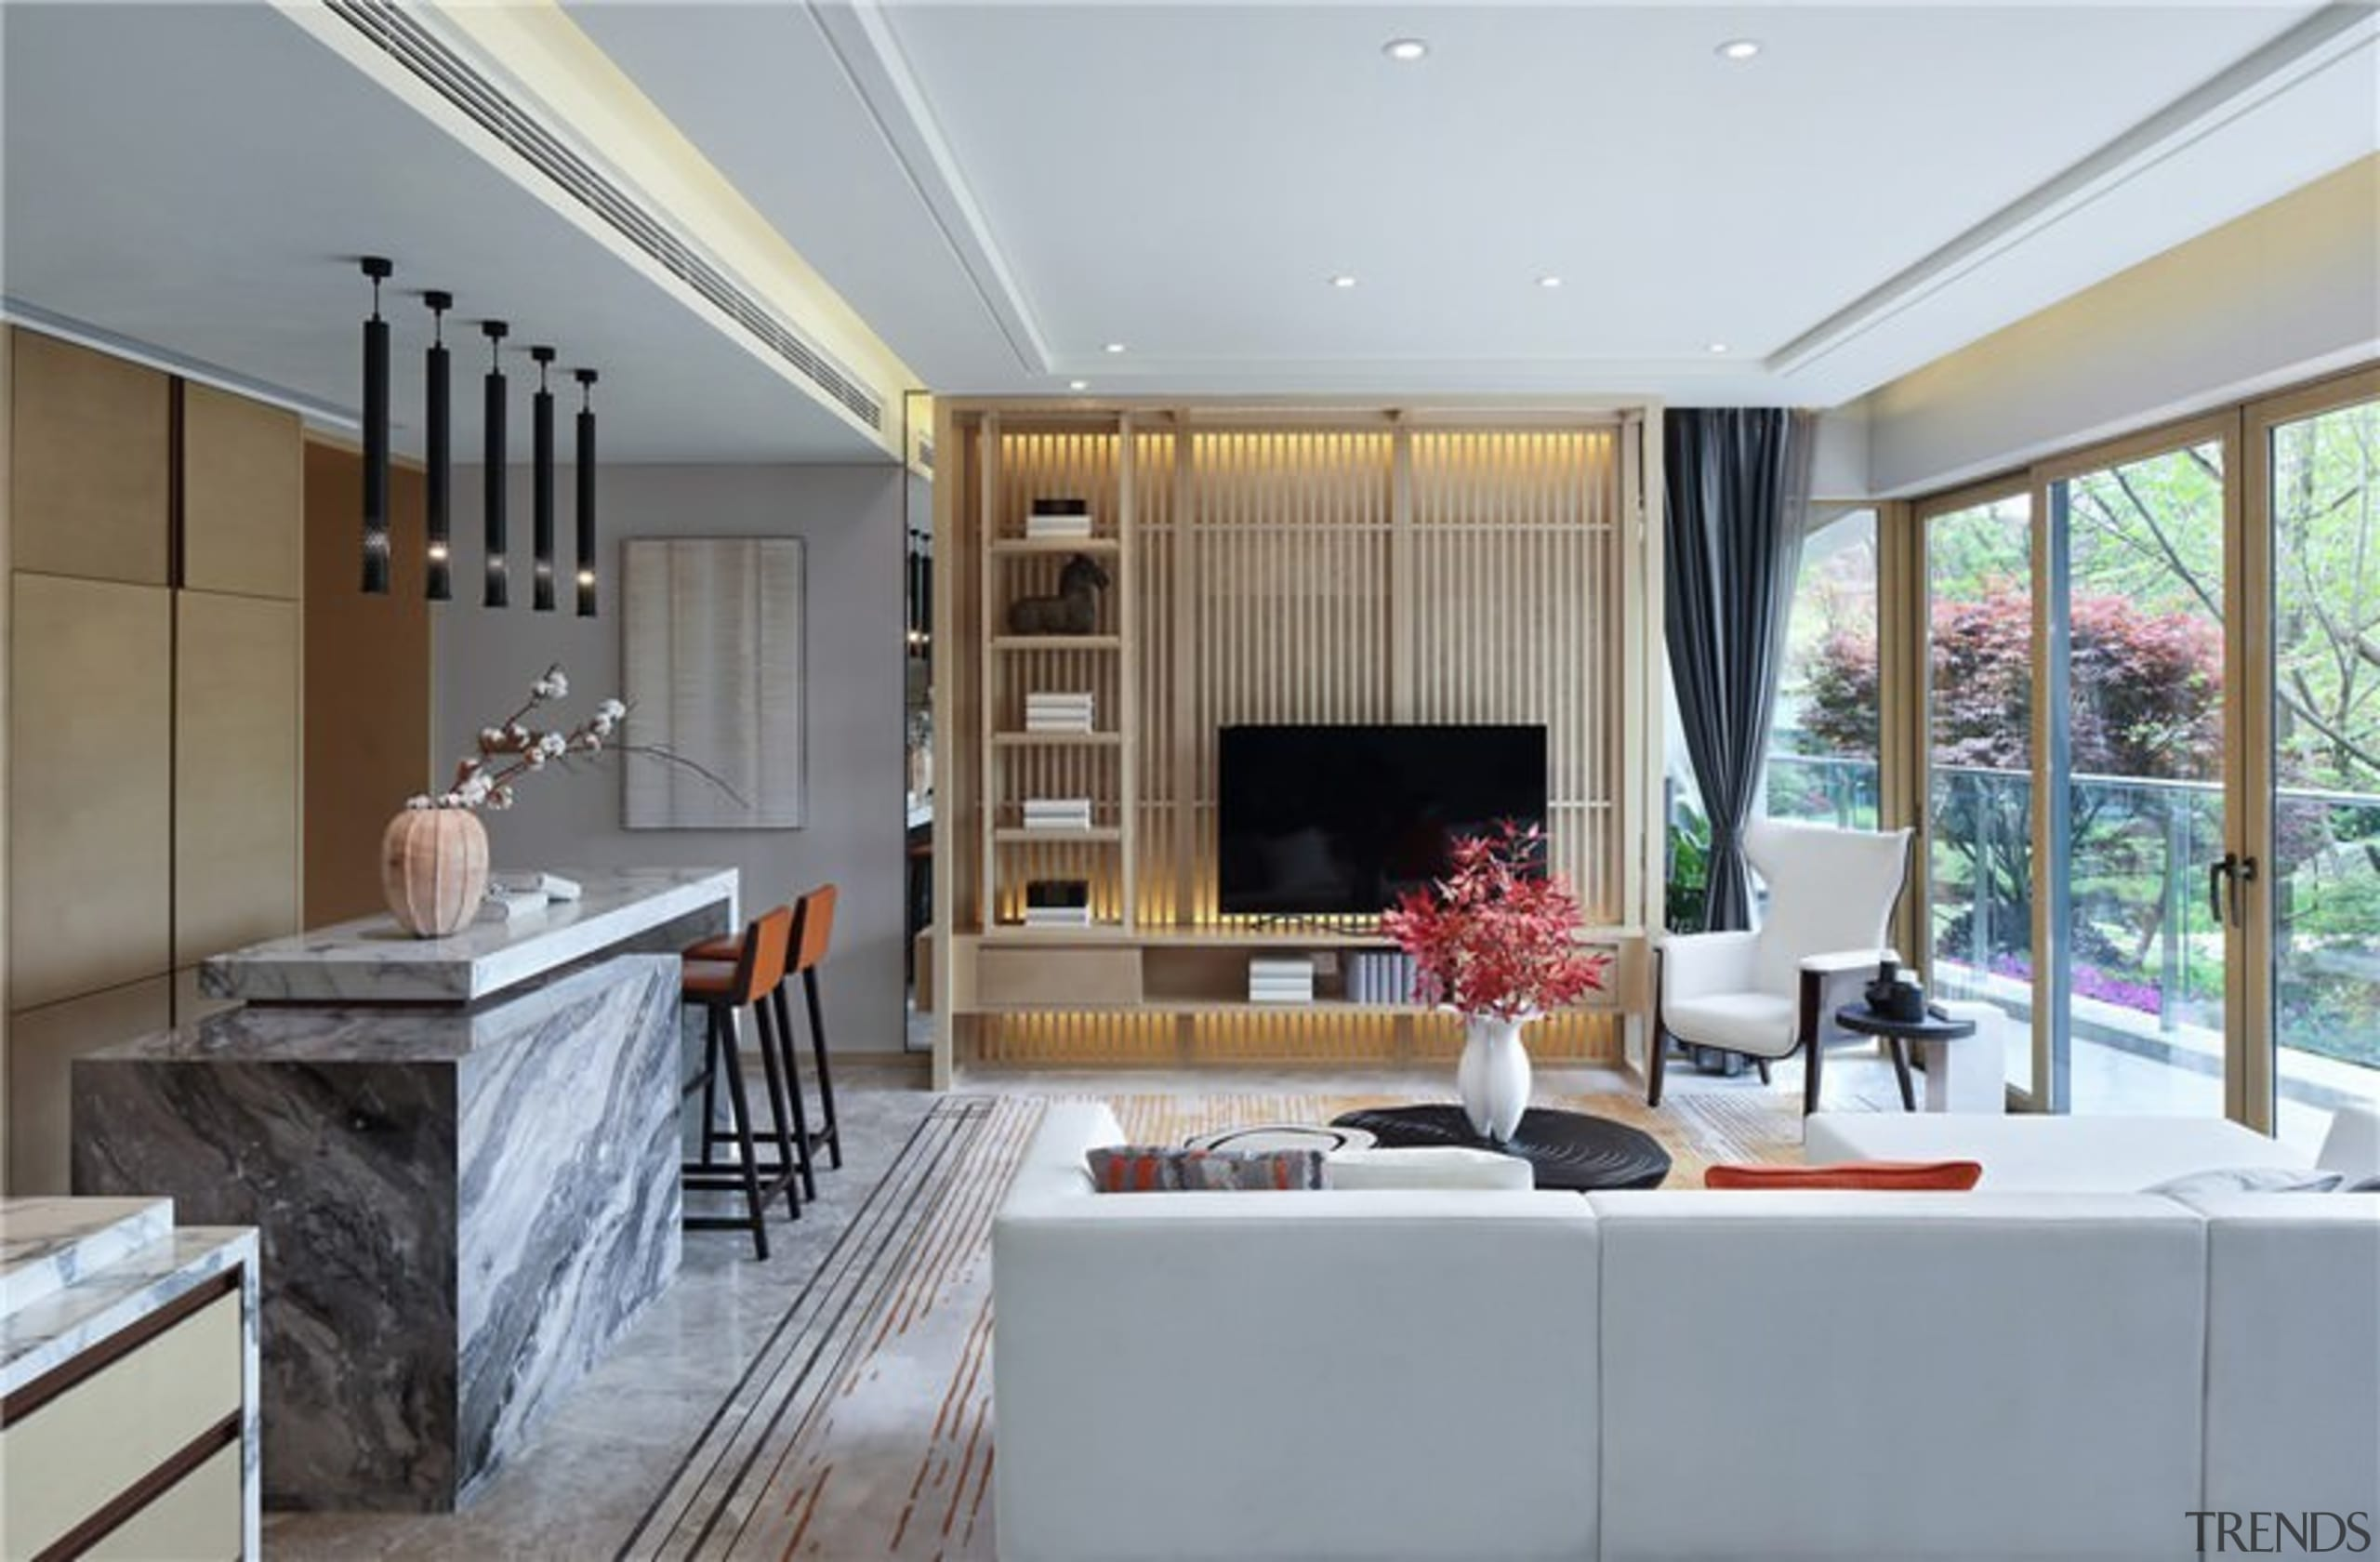 A small kitchen means more room for an ceiling, home, house, interior design, living room, real estate, window, gray